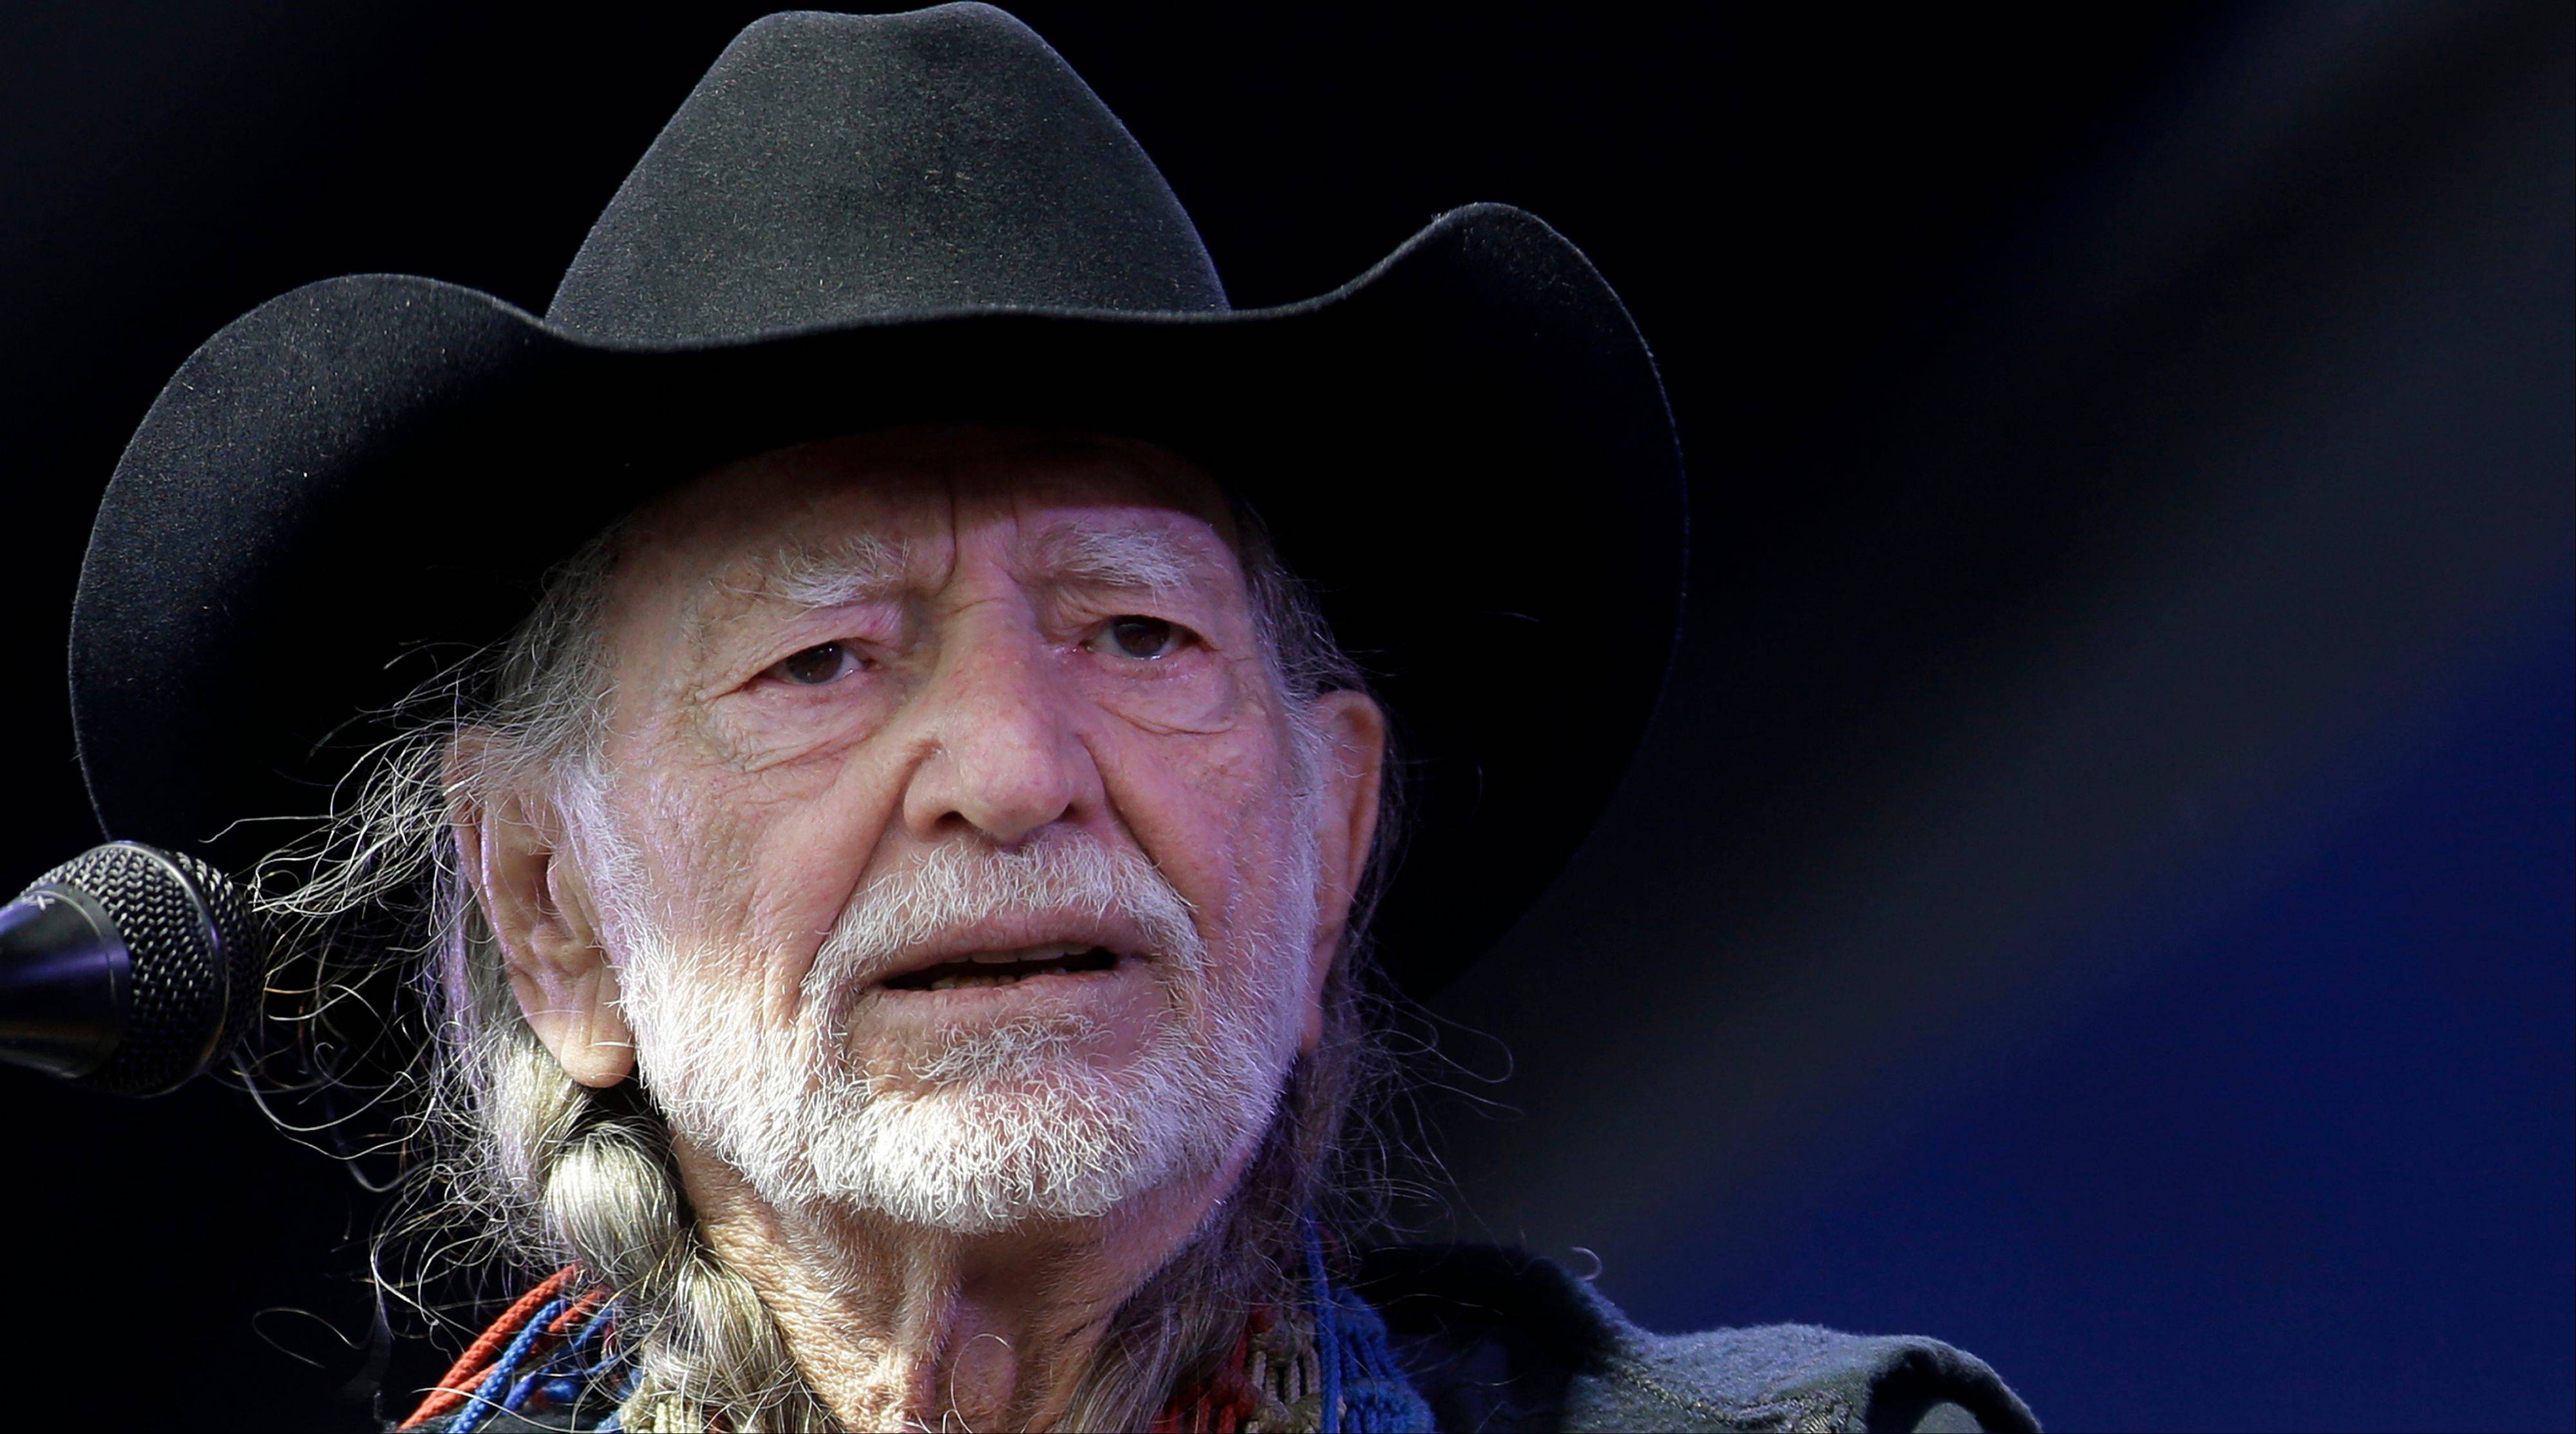 A missing toy armadillo with a connection to Willie Nelson has sparked a search in the New York suburbs. The Capitol Theater's general manager says a stuffed armadillo beloved by a member of Nelson's crew was stolen from the stage after a Nelson concert last Thursday, Sept. 19, 2013.